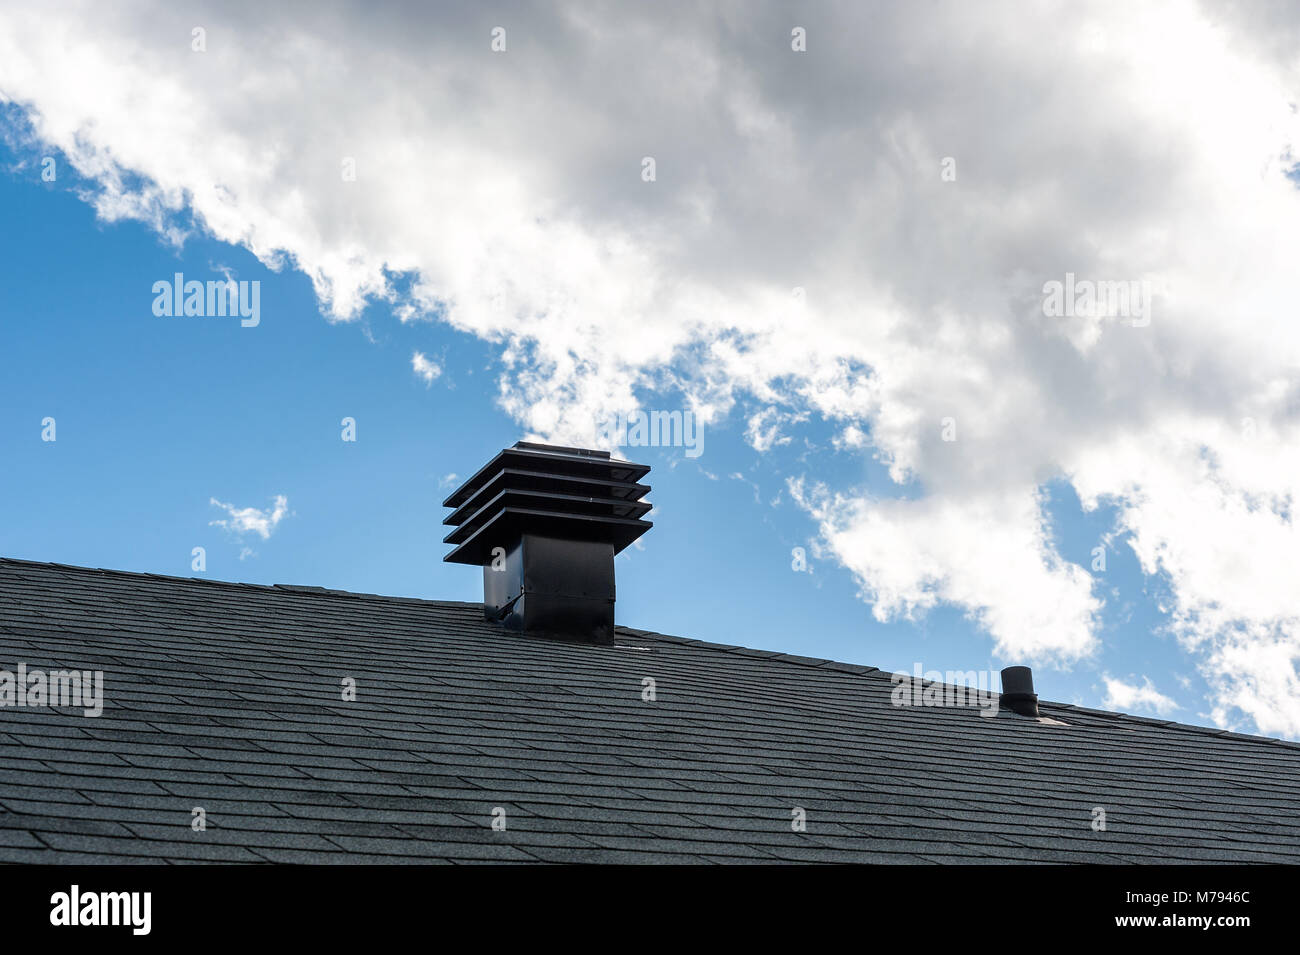 Roof Vent Pipe Stock Photos & Roof Vent Pipe Stock Images - Alamy